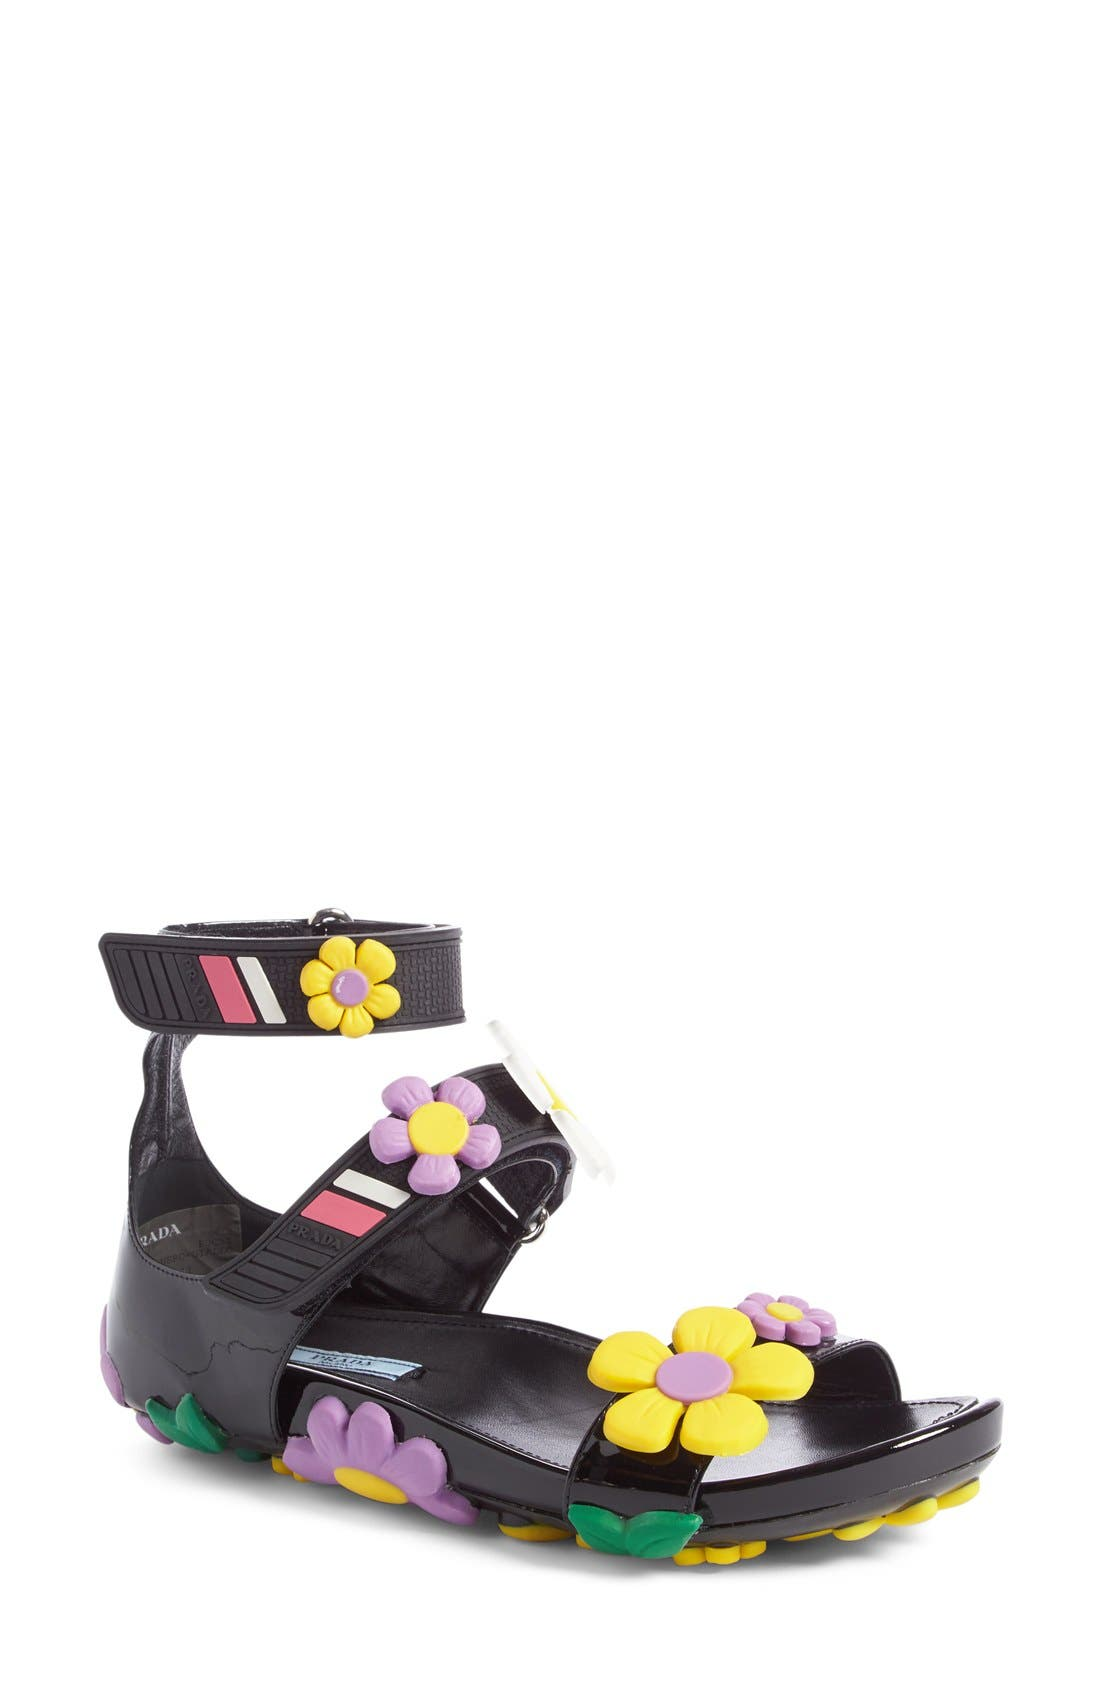 Main Image - Prada Floral Triple Band Sandal (Women)